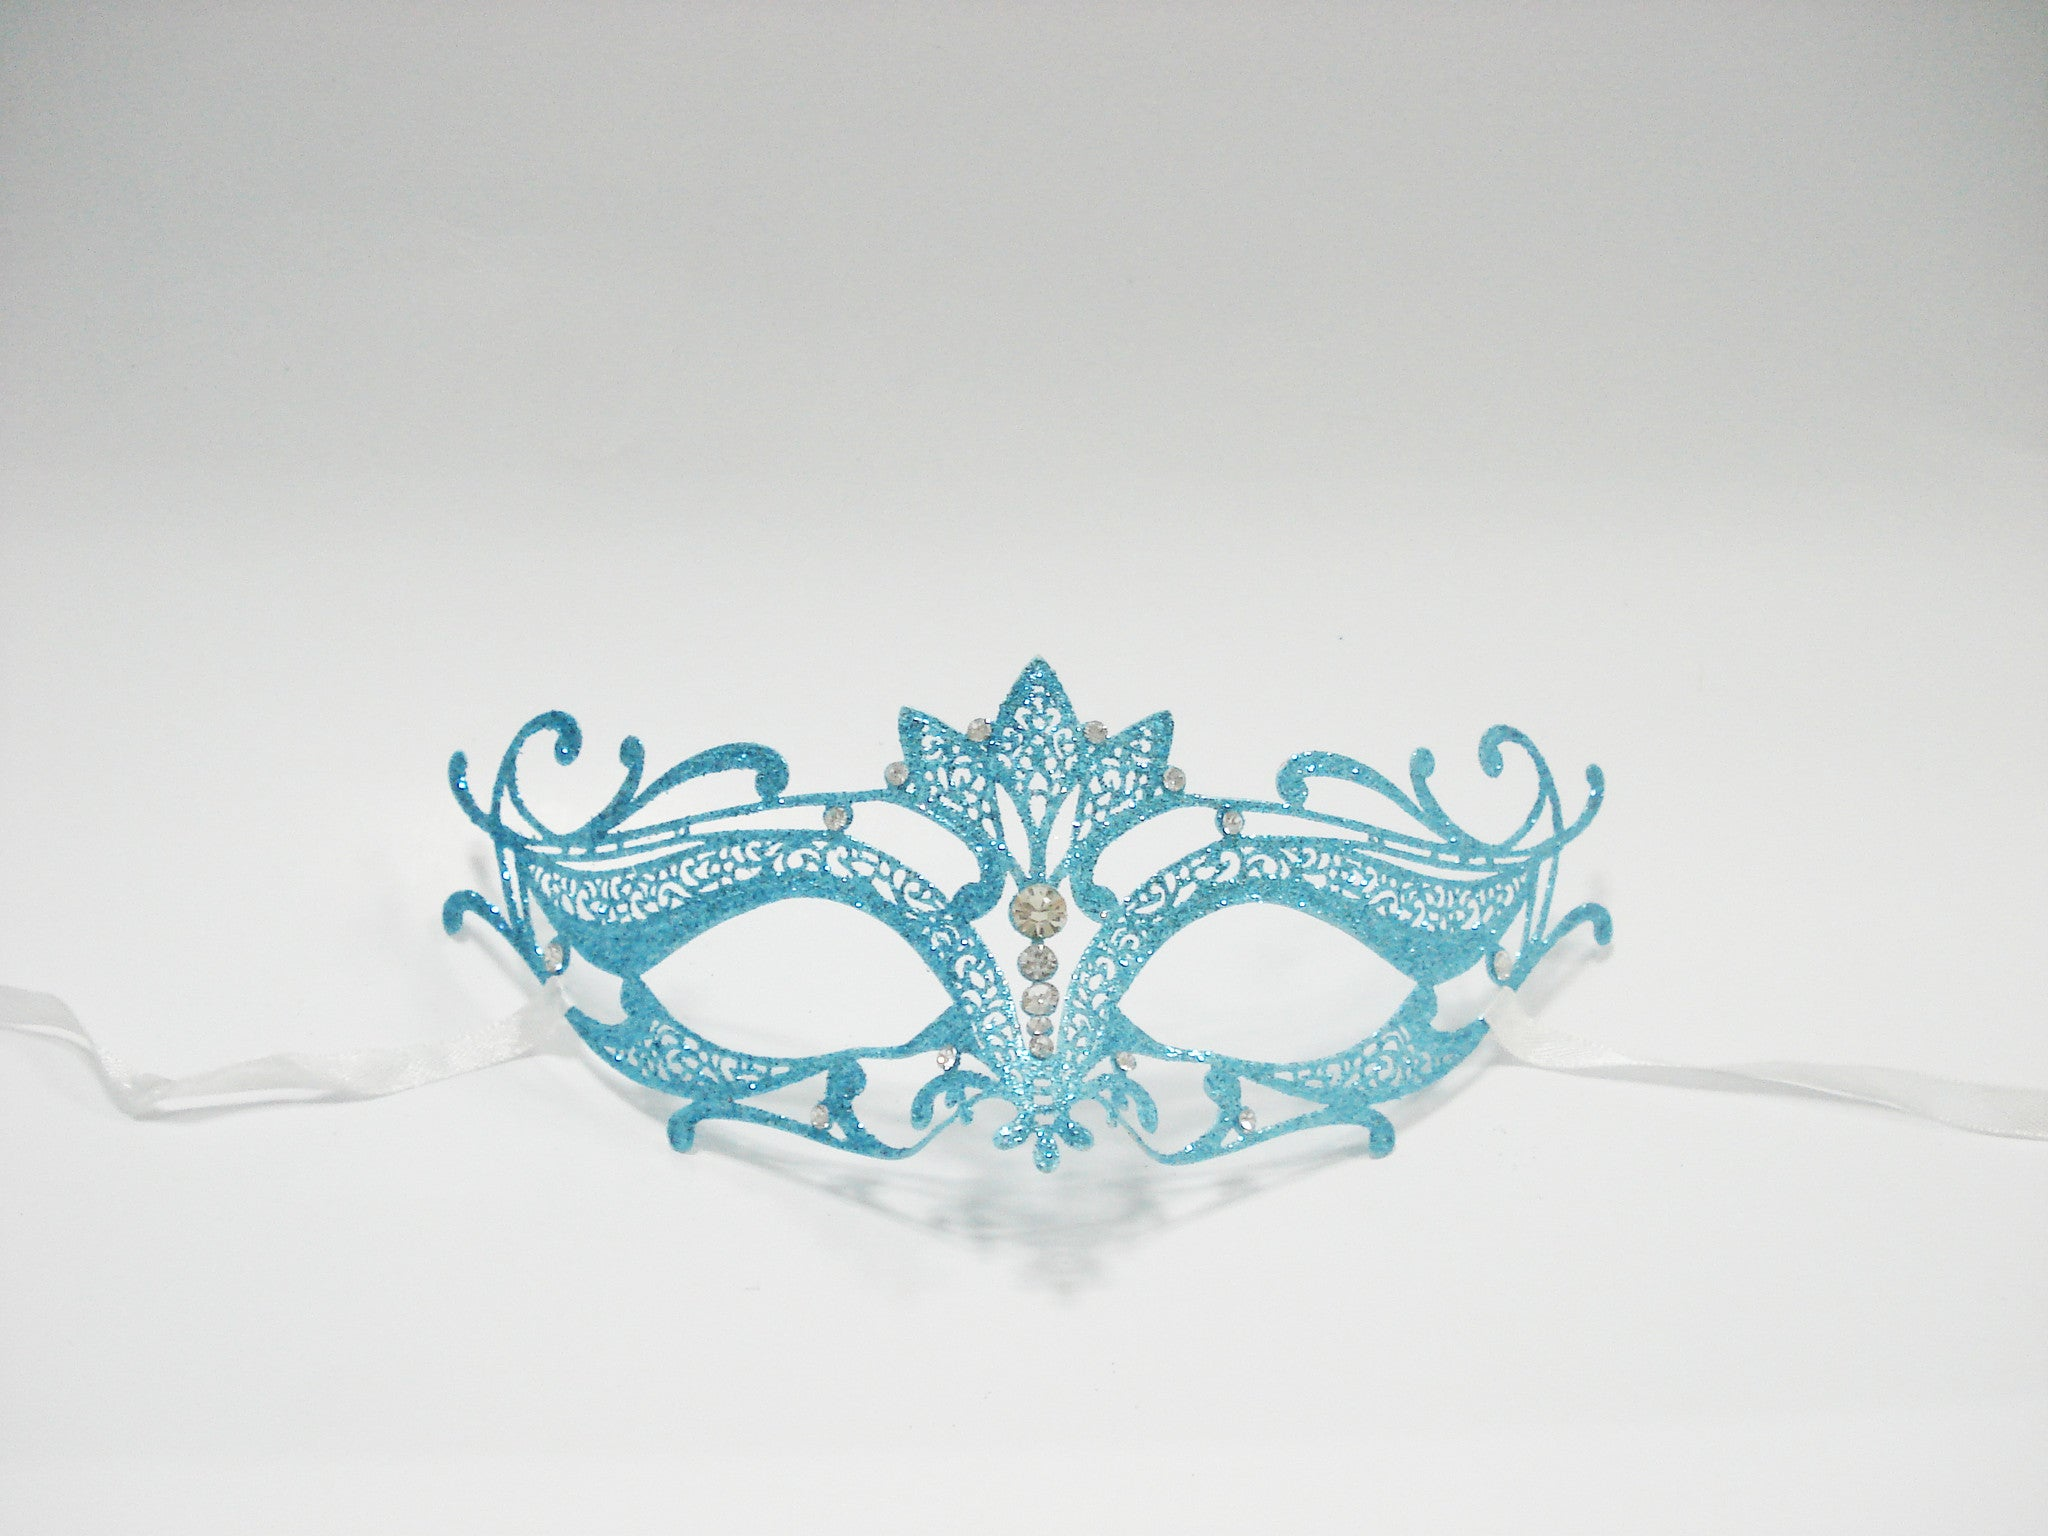 MK128 - Skyblue Swan Glitter Mask - Tamarr Imports Innovative Giftware Pty Ltd